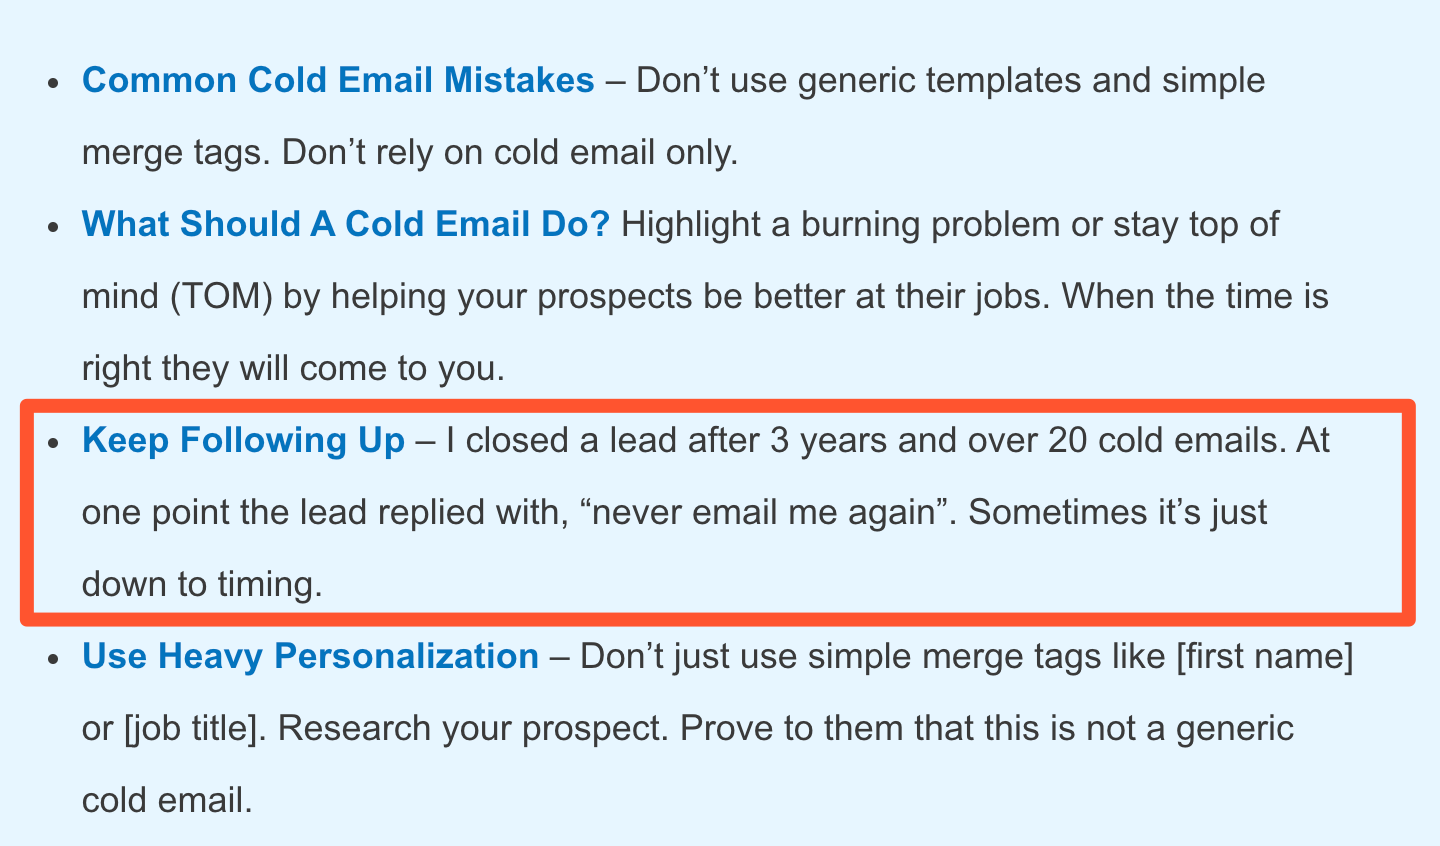 Importance of a cold email sequence